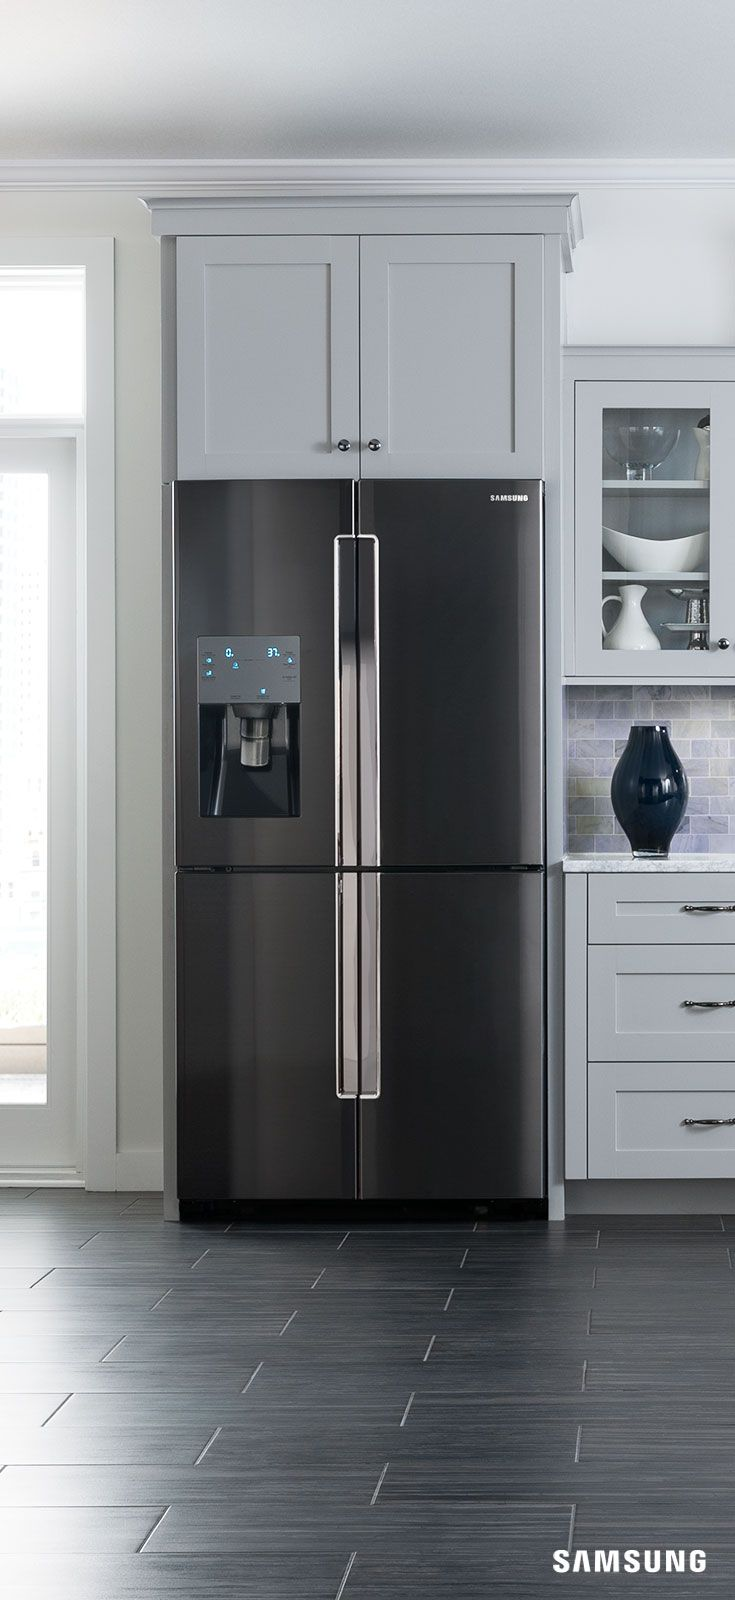 Uncategorized Kitchen With Black And Stainless Appliances best 25 black stainless steel ideas on pinterest counter depth 4 door refrigerator with country kitchenswhite kitchen cabinetskitchen renokitch